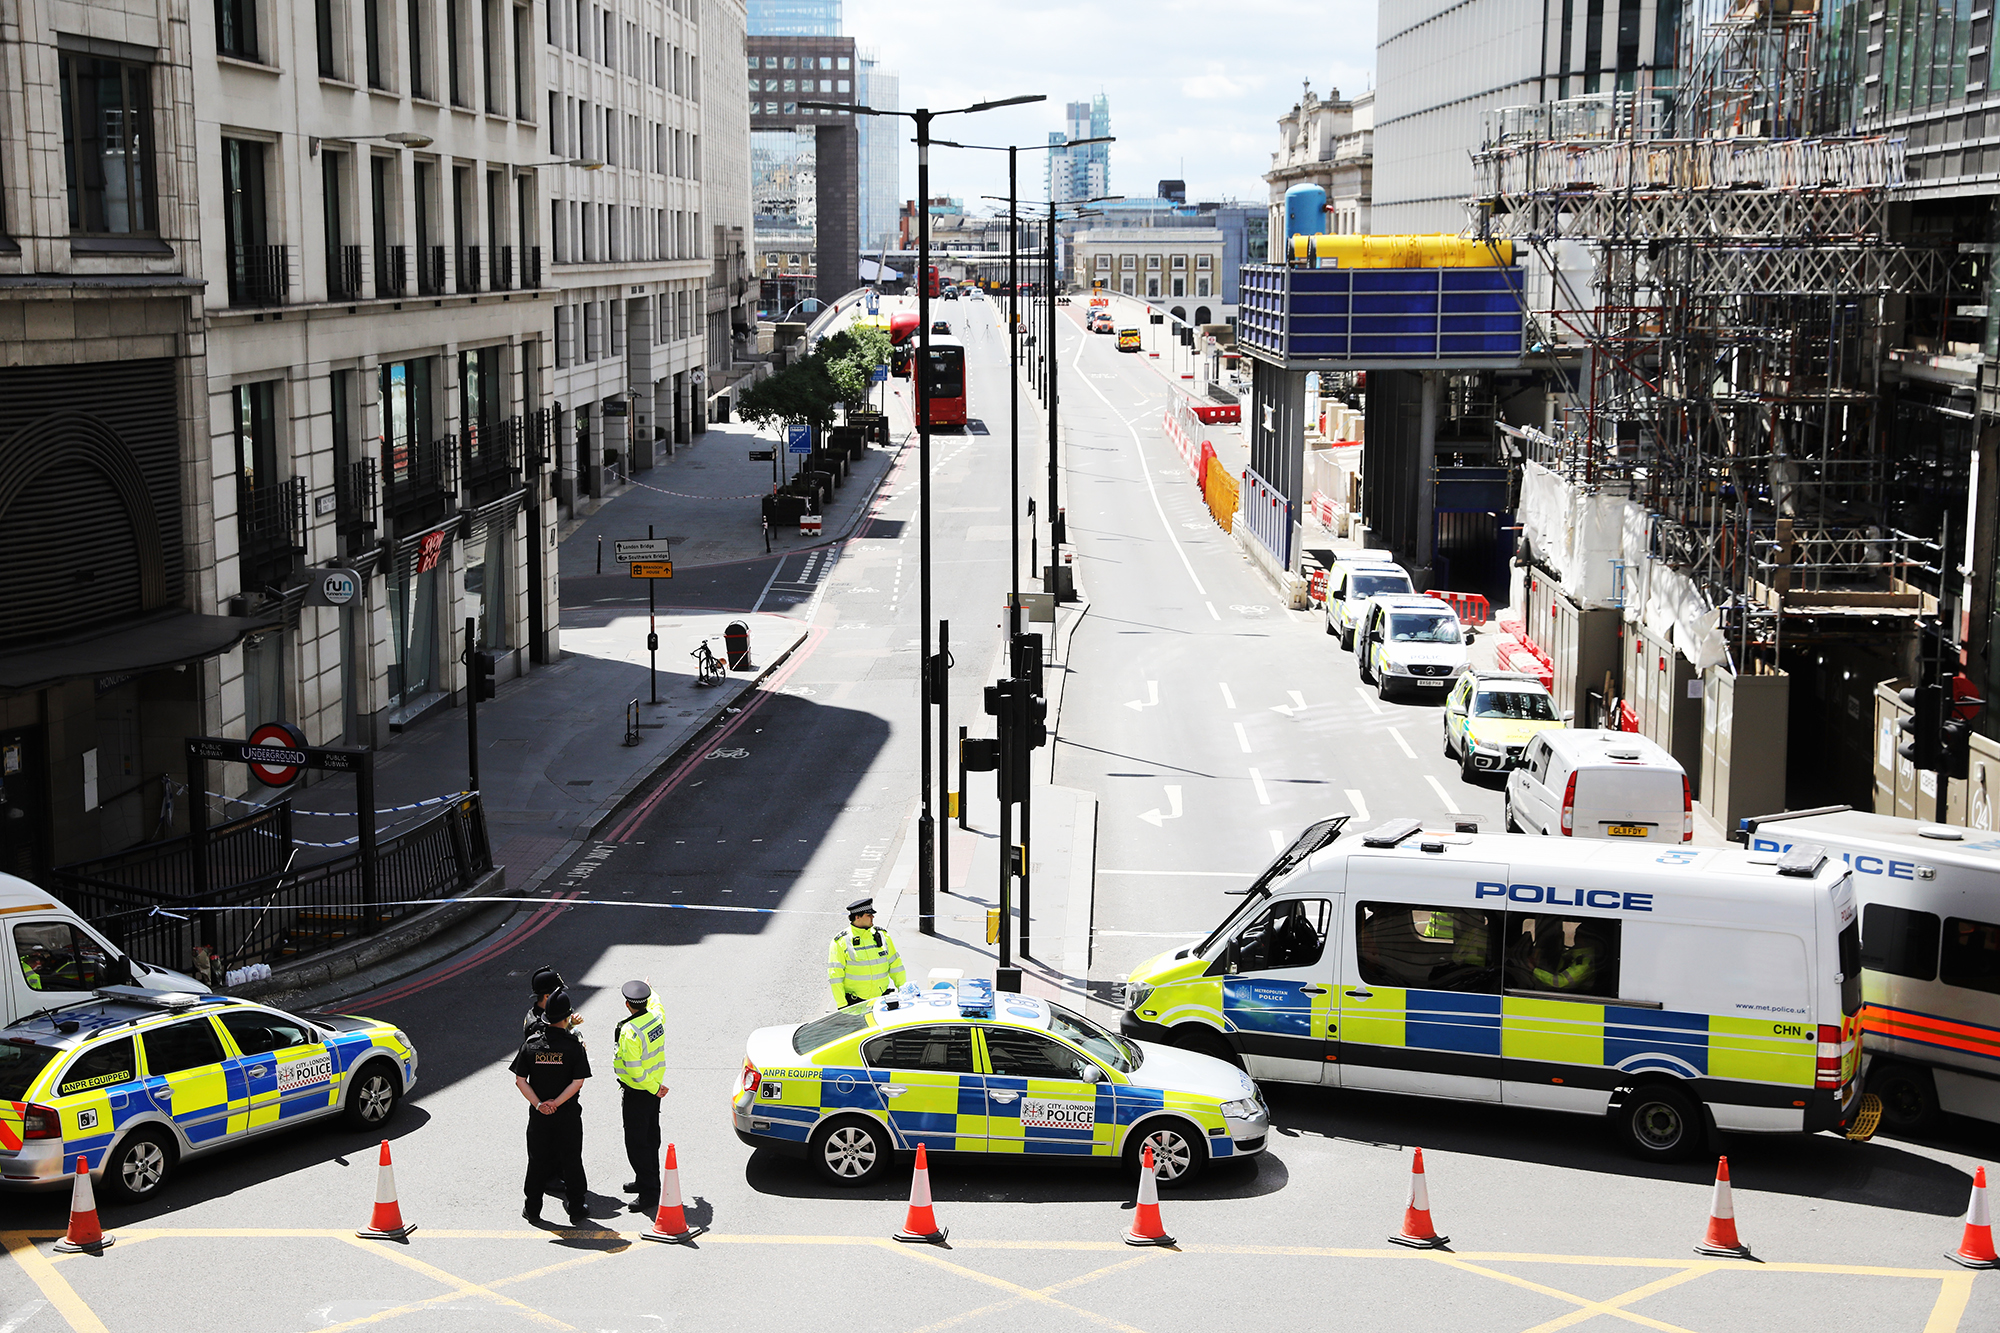 Police operate a cordon on the North side of London Bridge as forensic officers work after Saturday's terrorist attack, on June 4, 2017 in London.